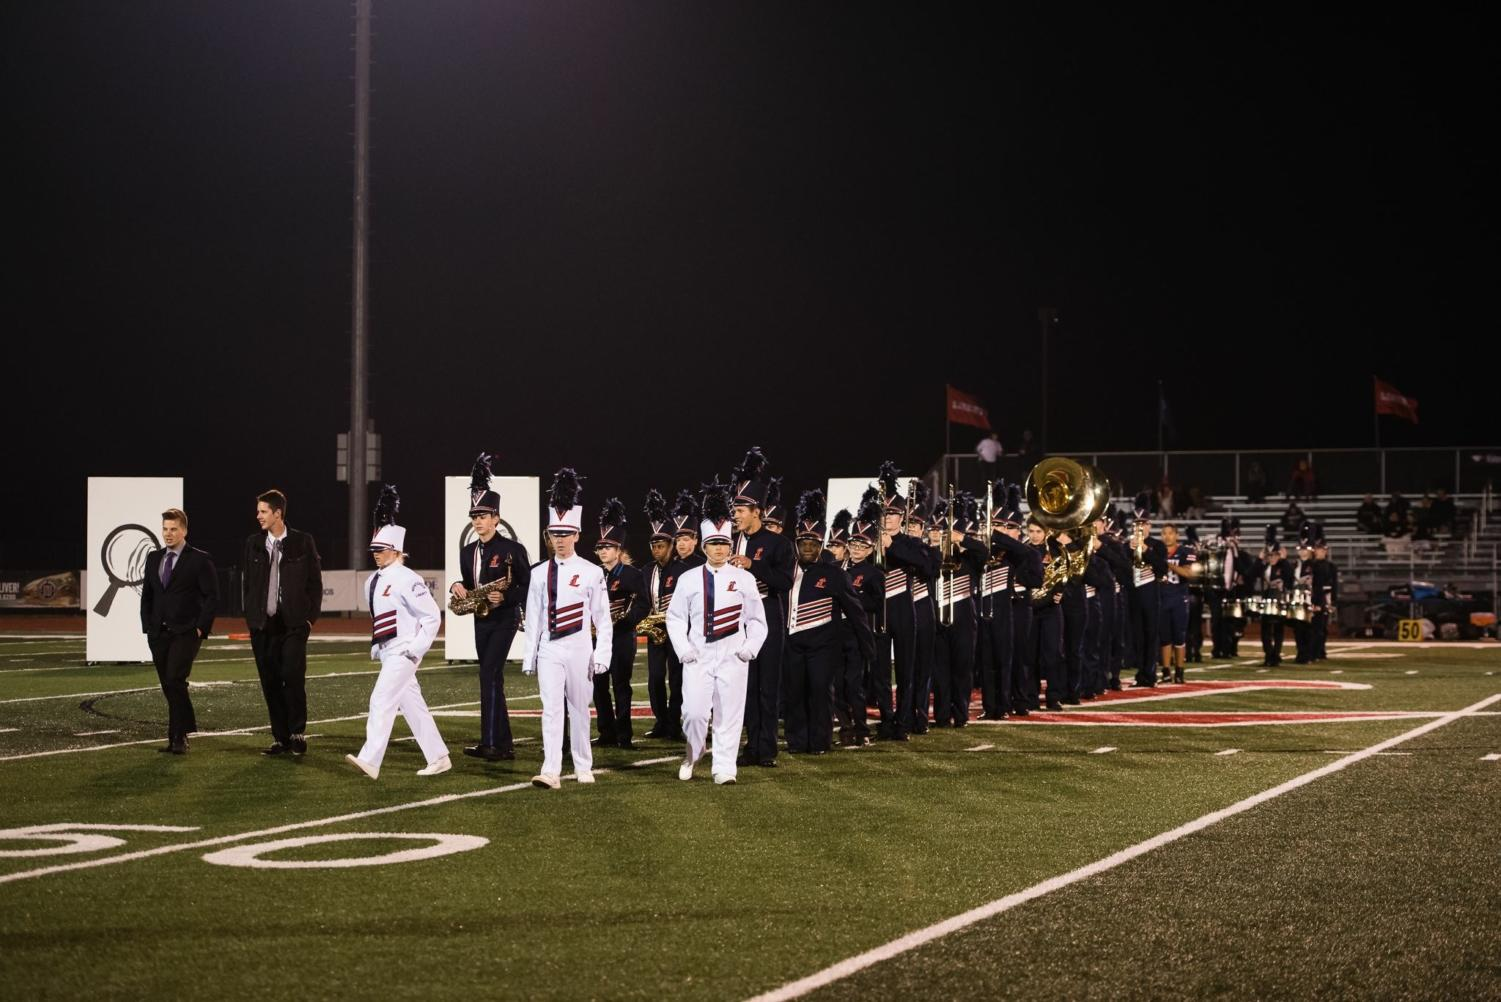 The band led by drum majors for their last show of the season.